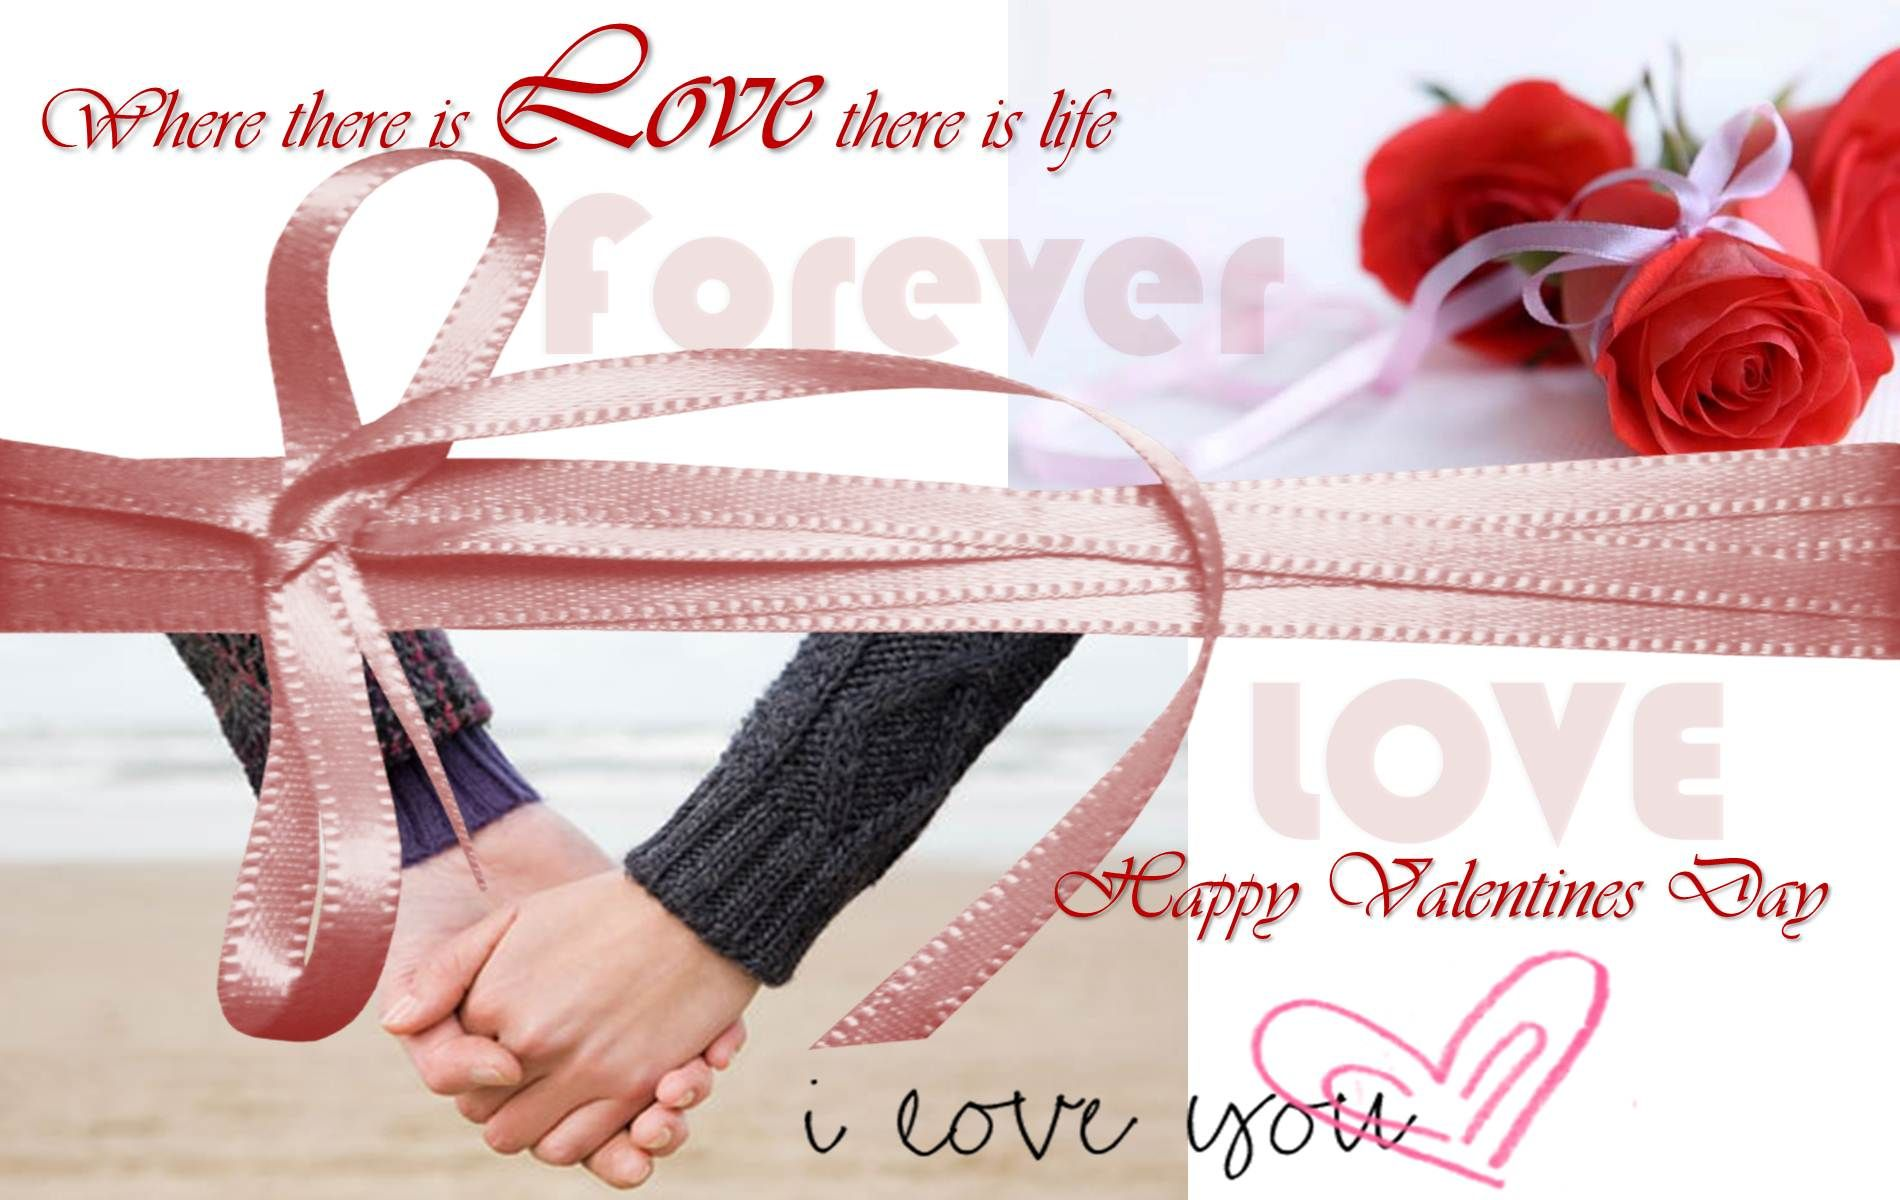 Happy valentines day quotes wallpapers high definition happy valentines day quotes wallpapers kristyandbryce Image collections